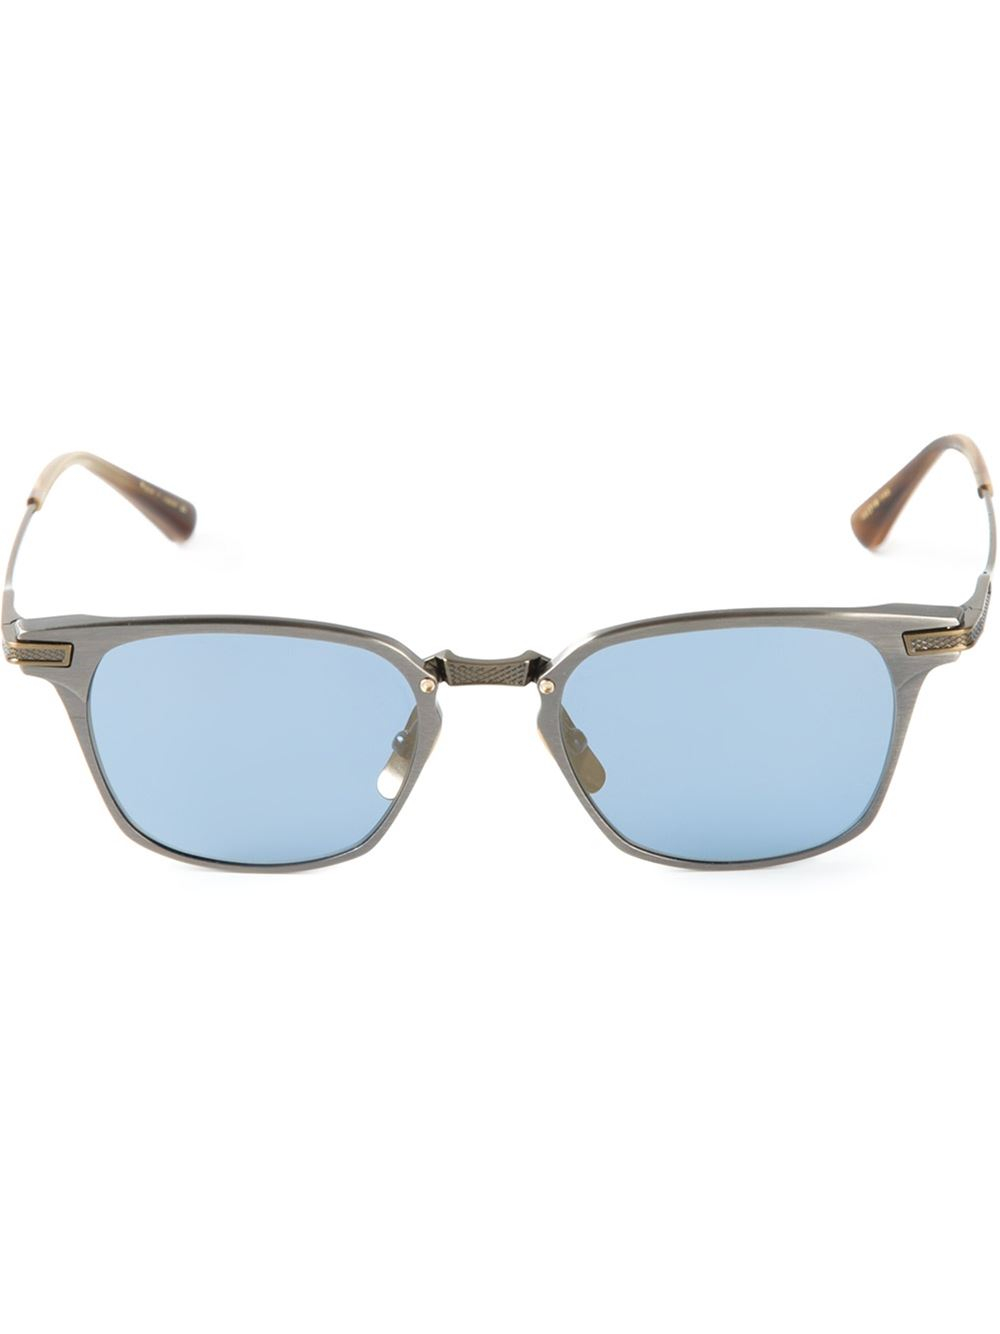 Dita eyewear 'union' Sunglasses in Gray | Lyst Dita Eyewear